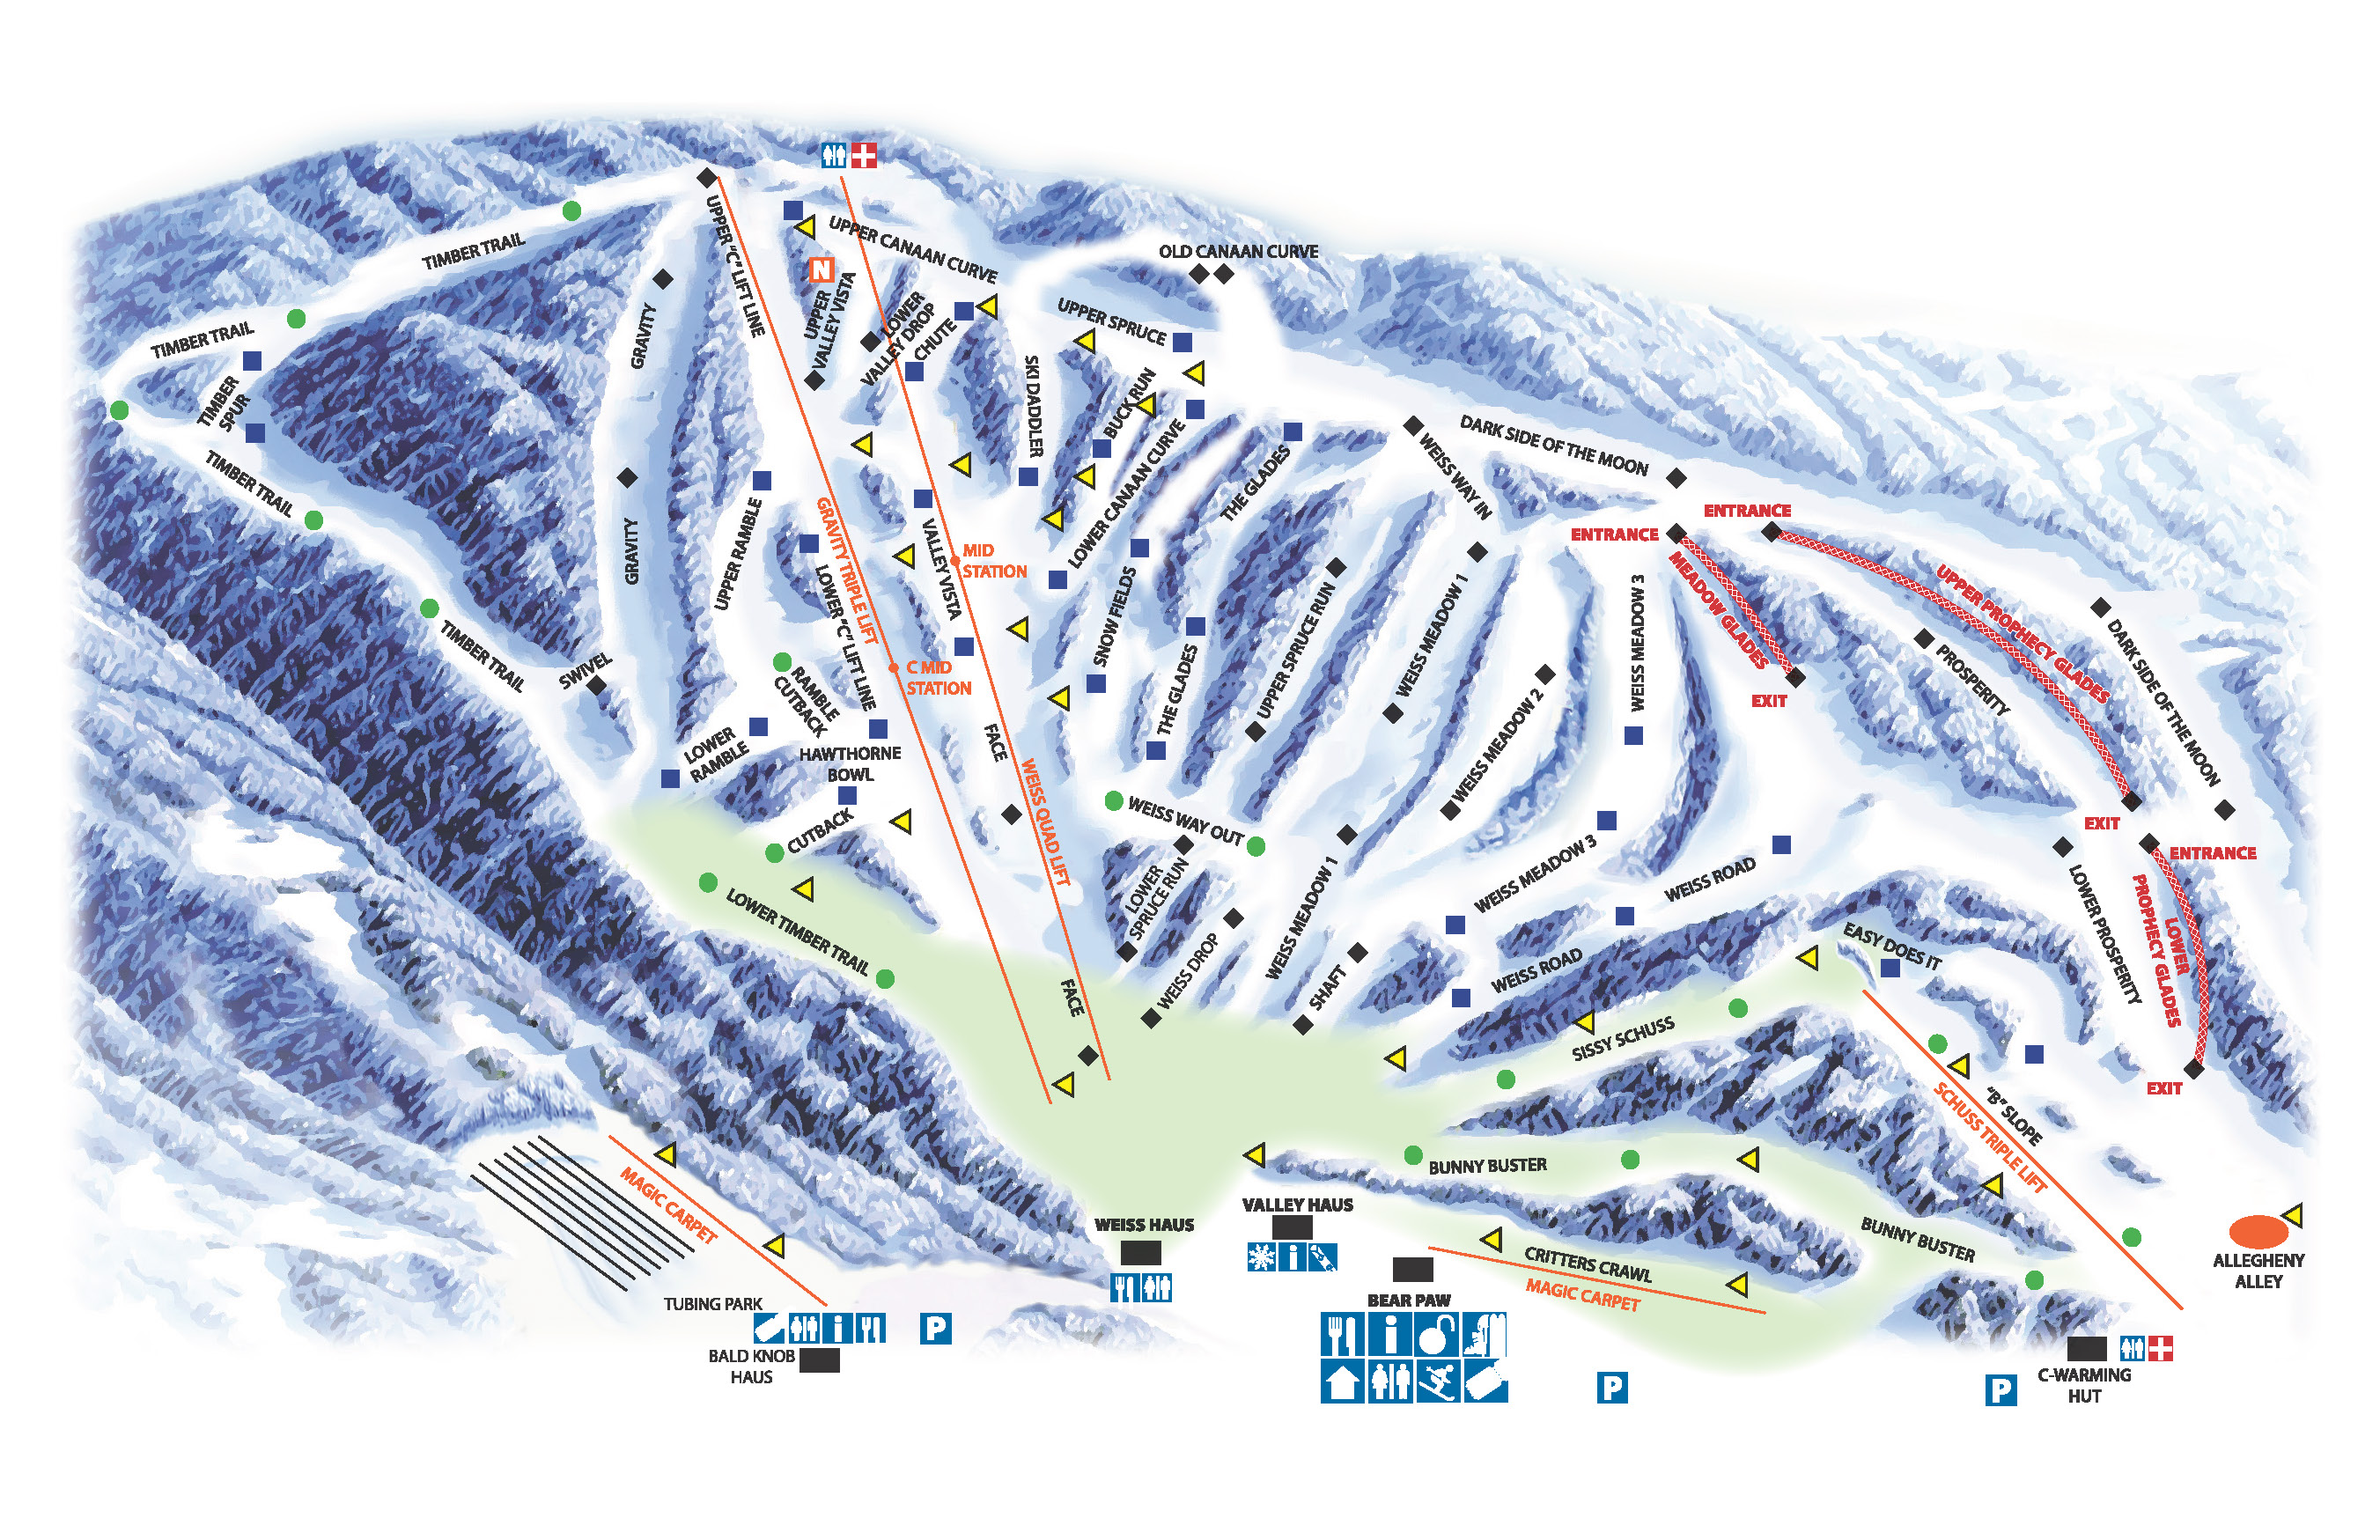 canaan valley resort - skimap